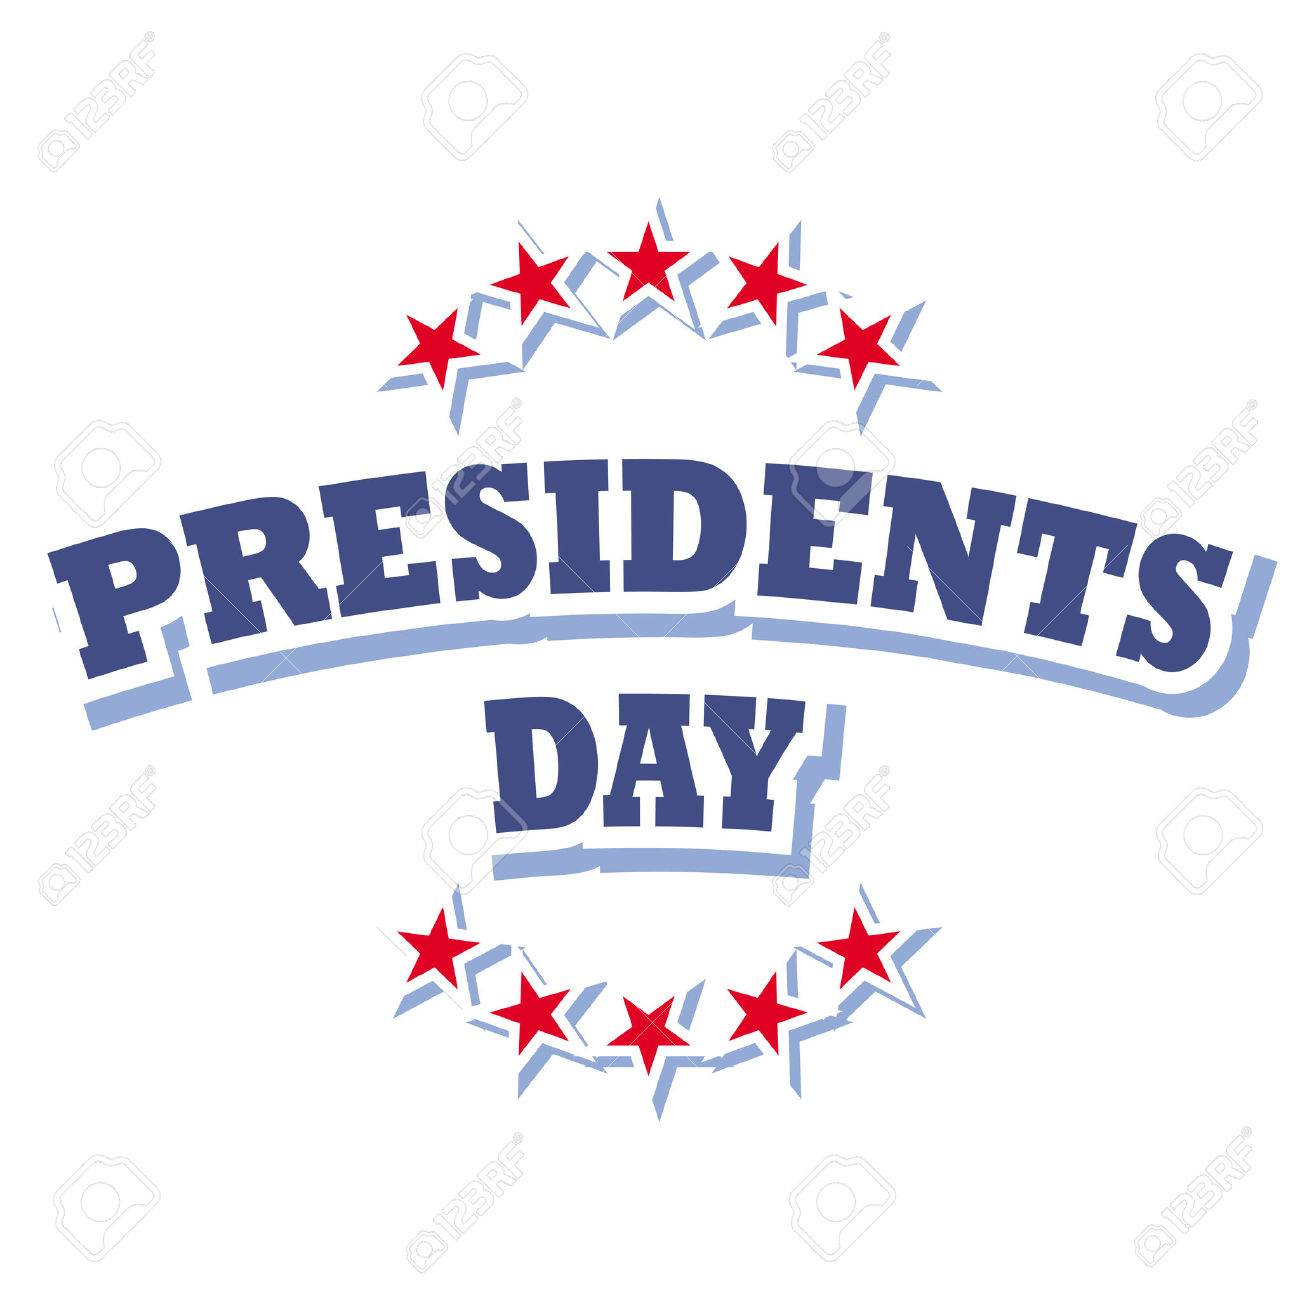 Free presidents day clipart 6 » Clipart Station.